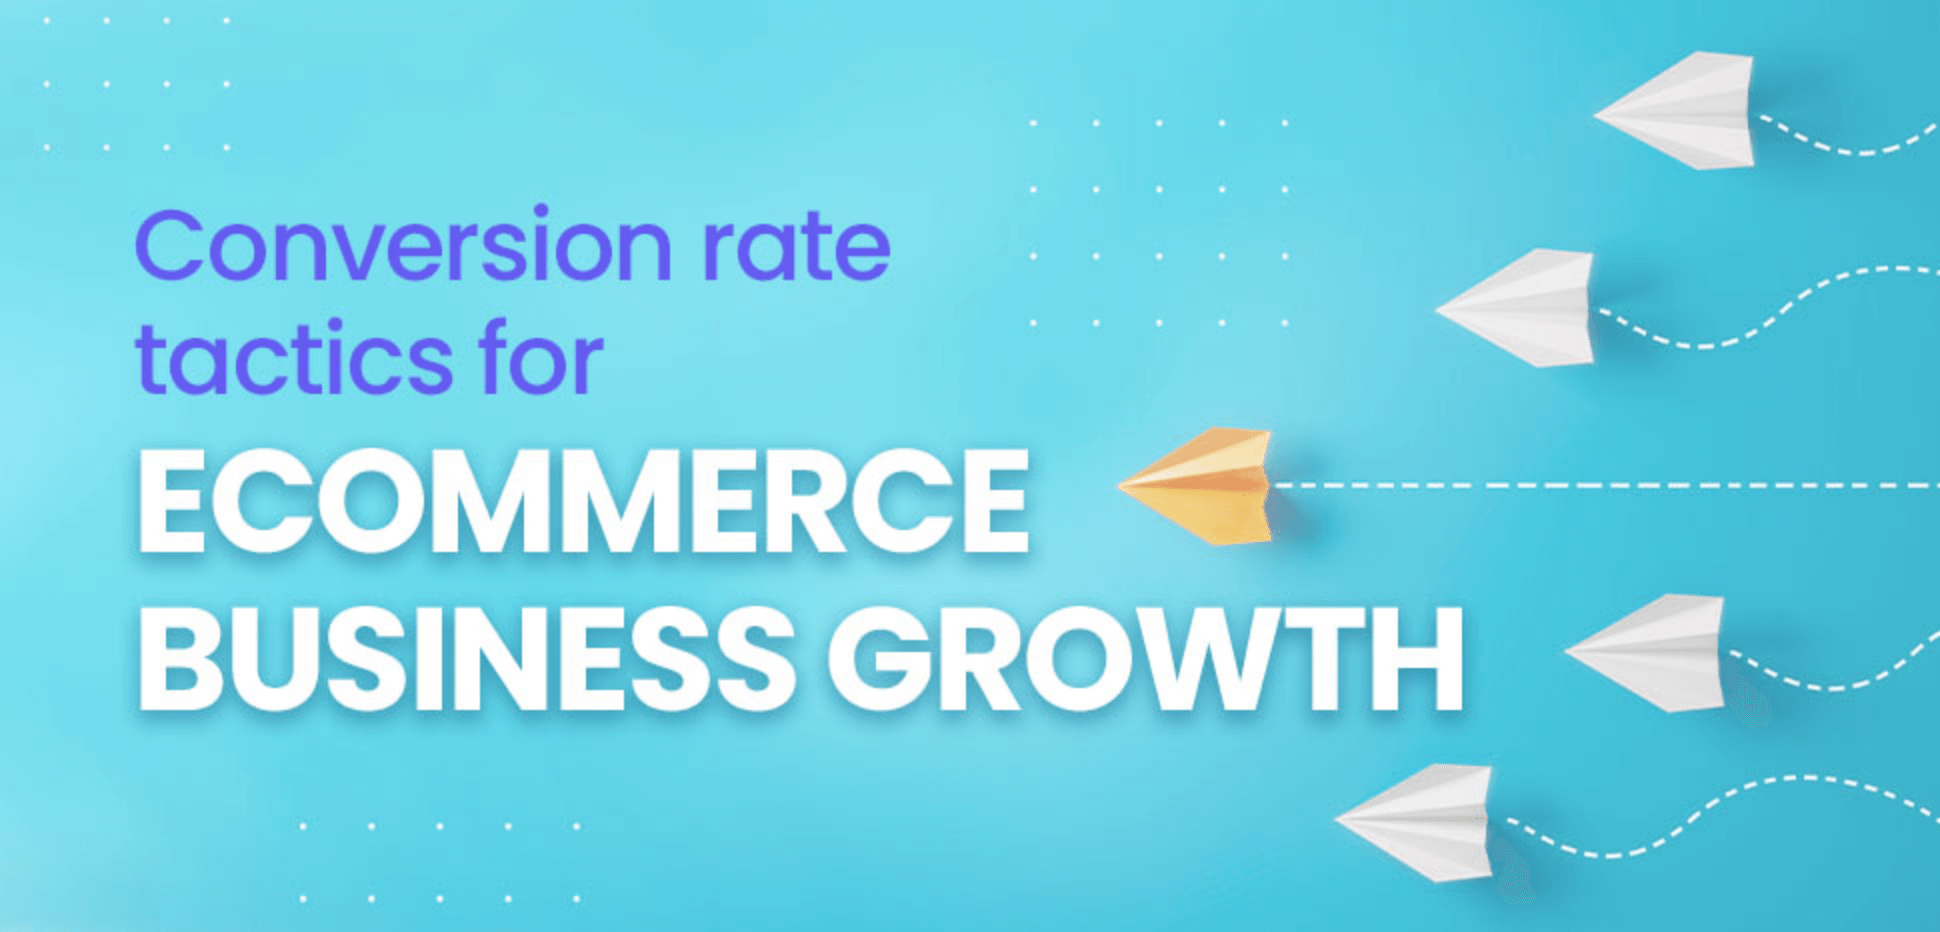 Conversion rate tactics for eCommerce business growth